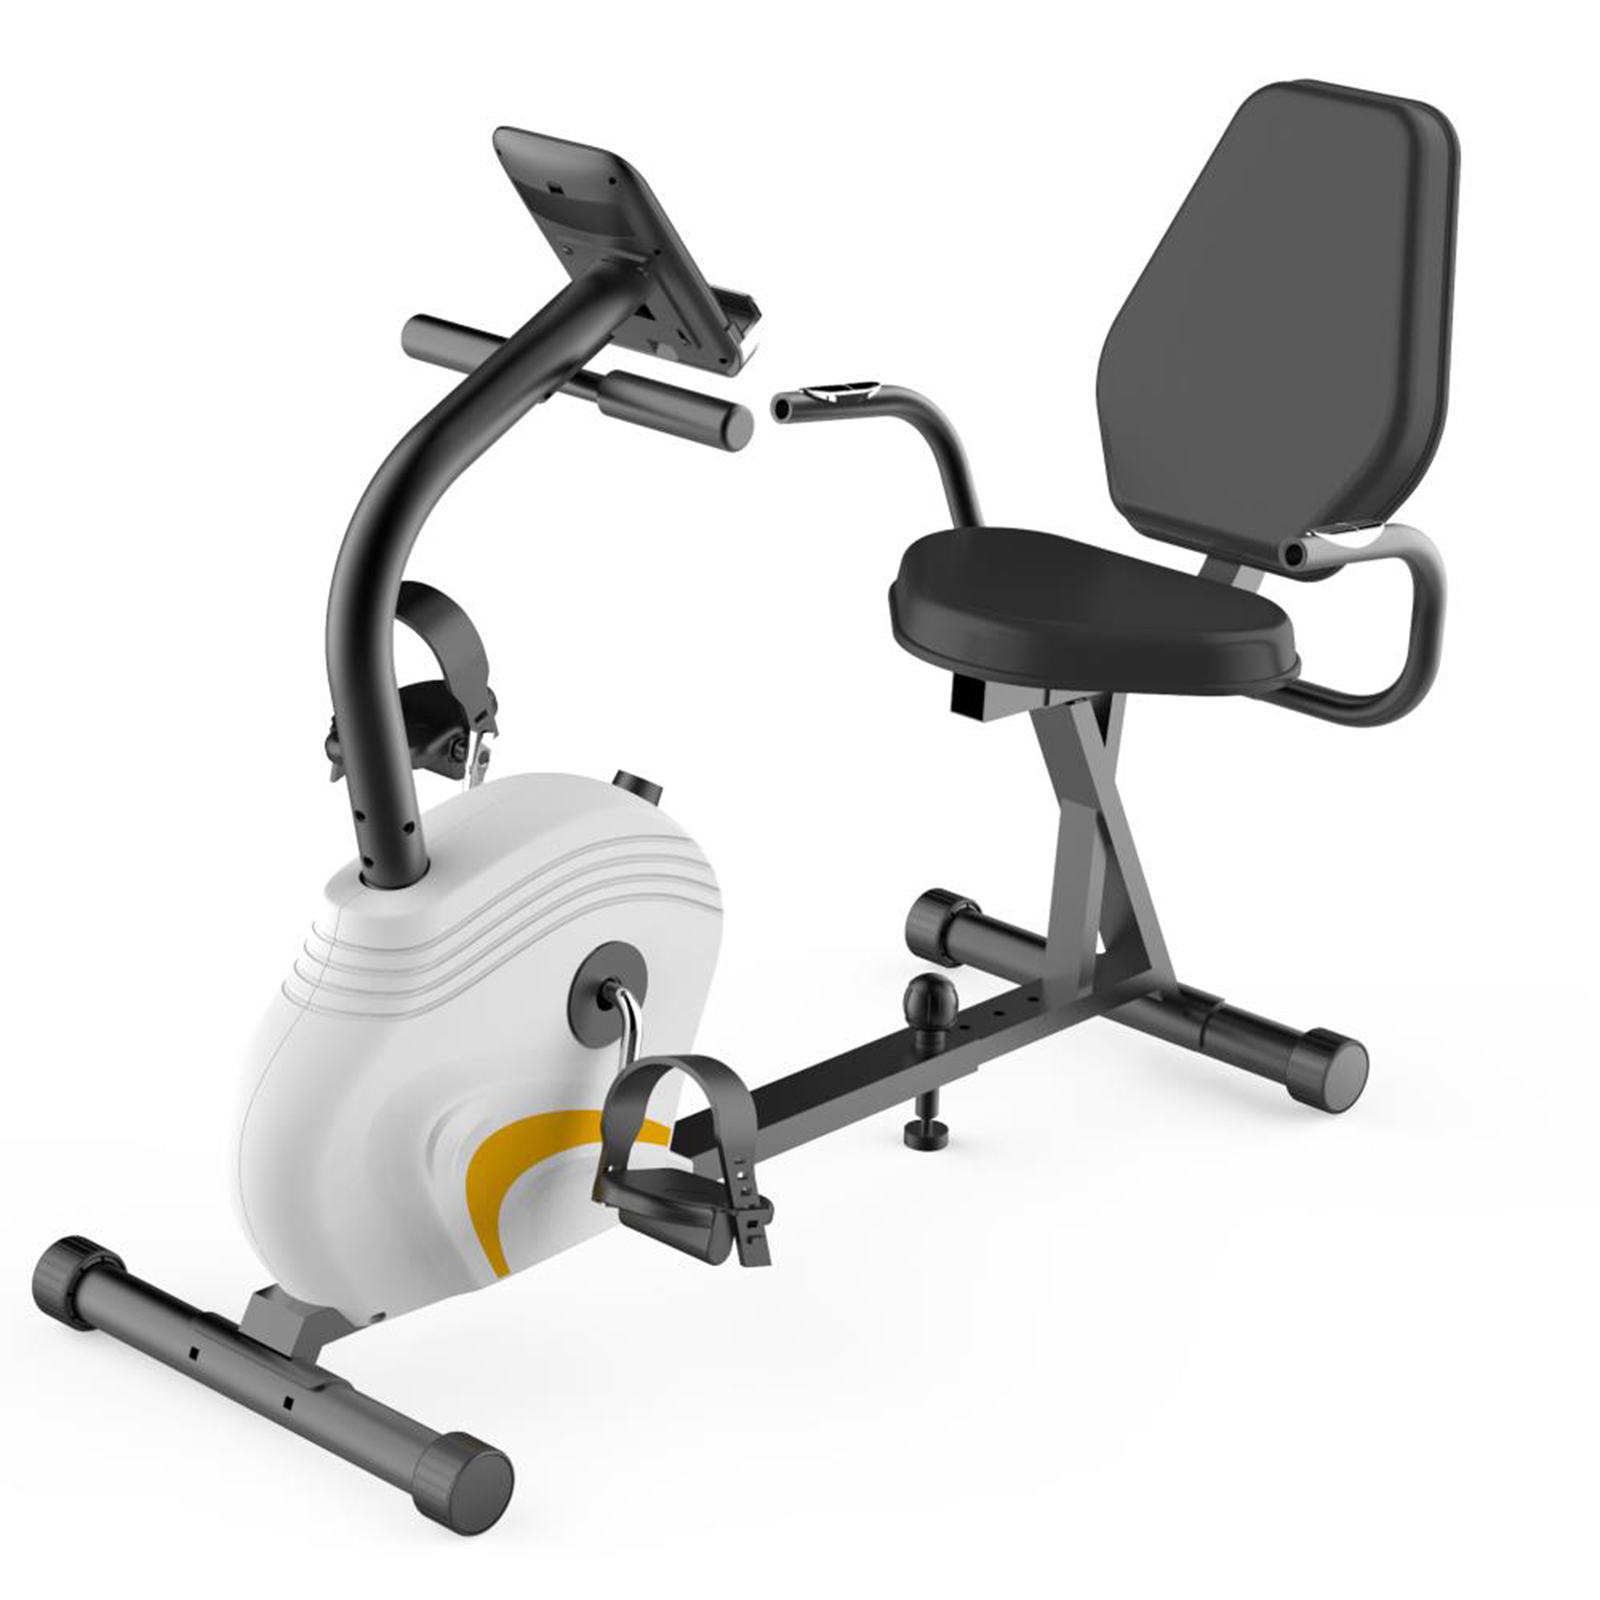 Home/Office Recumbent Exercise Bike - Bicycle Pedaling Fi...